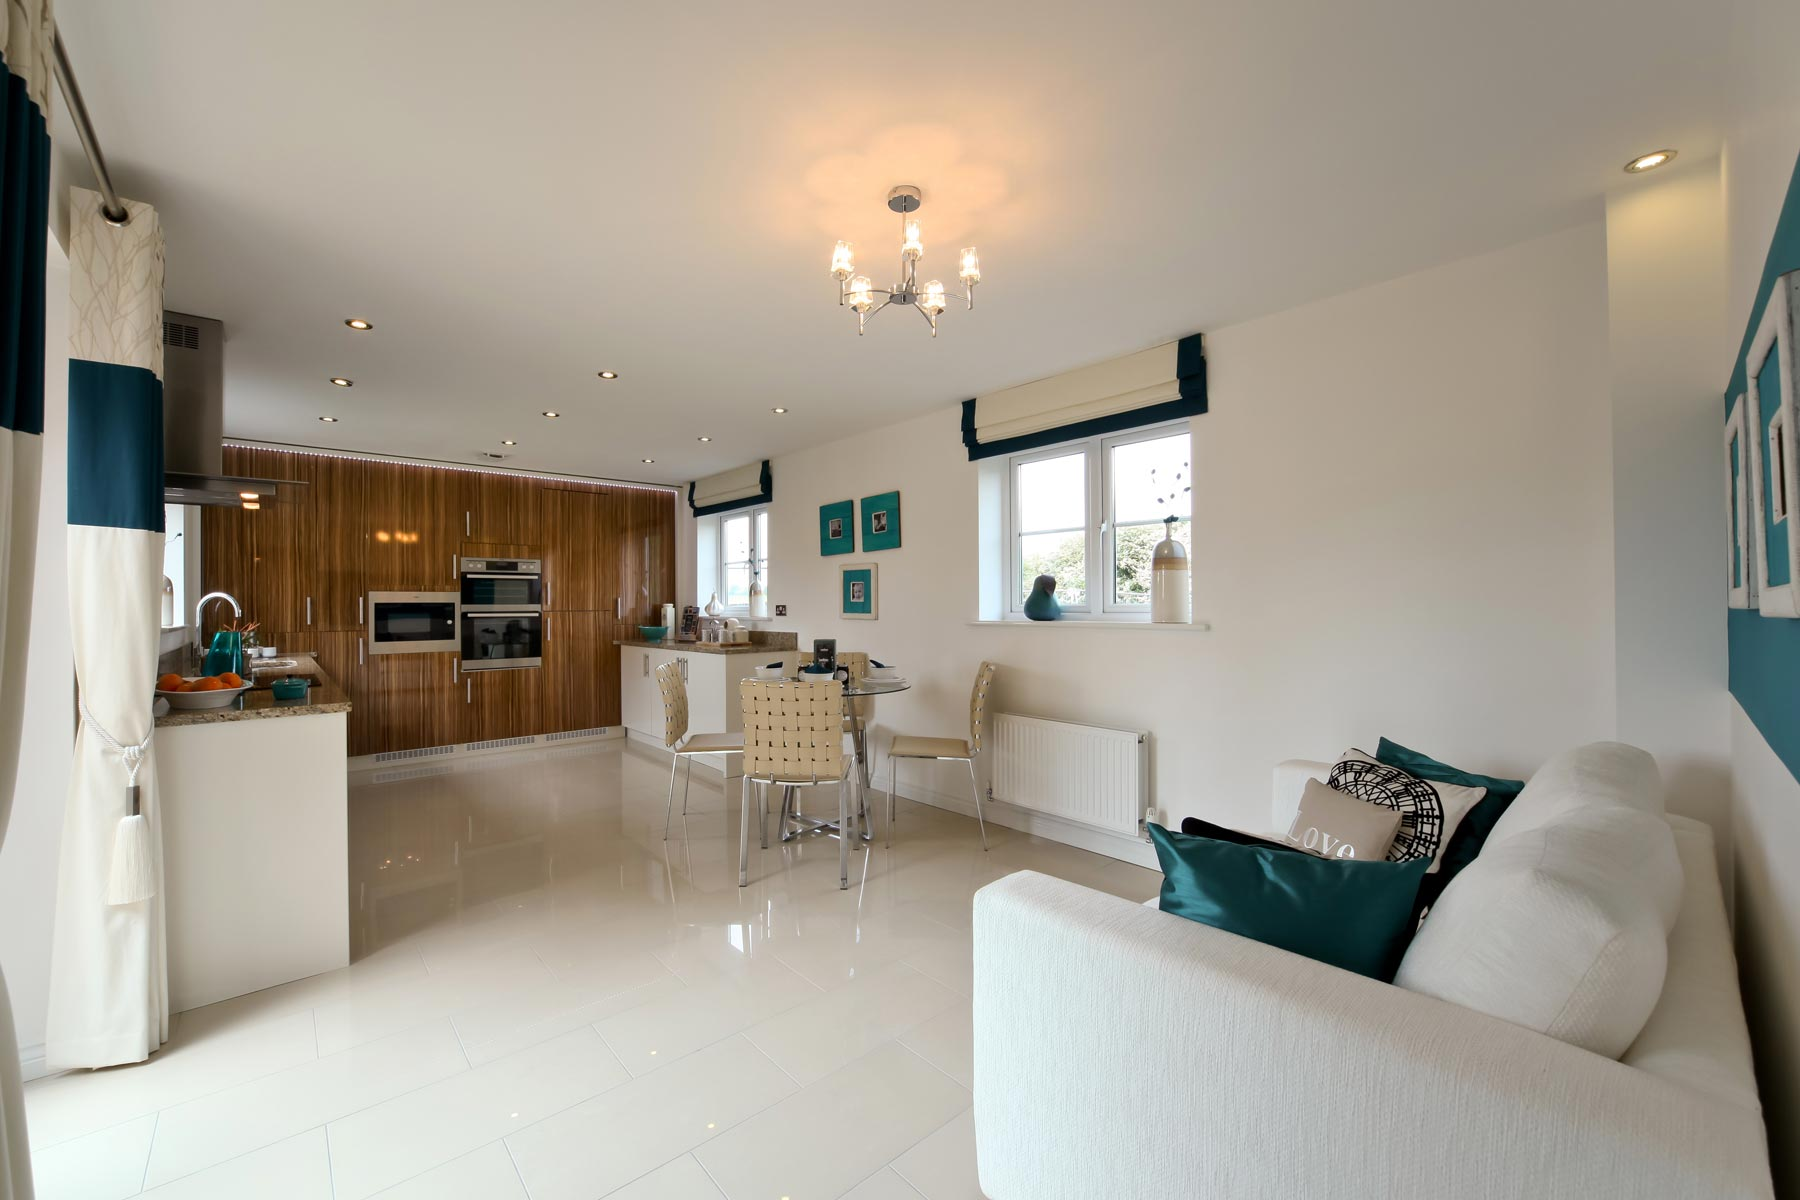 Taylor Wimpey-Interior-The Langdale-4 bedroom new home-7